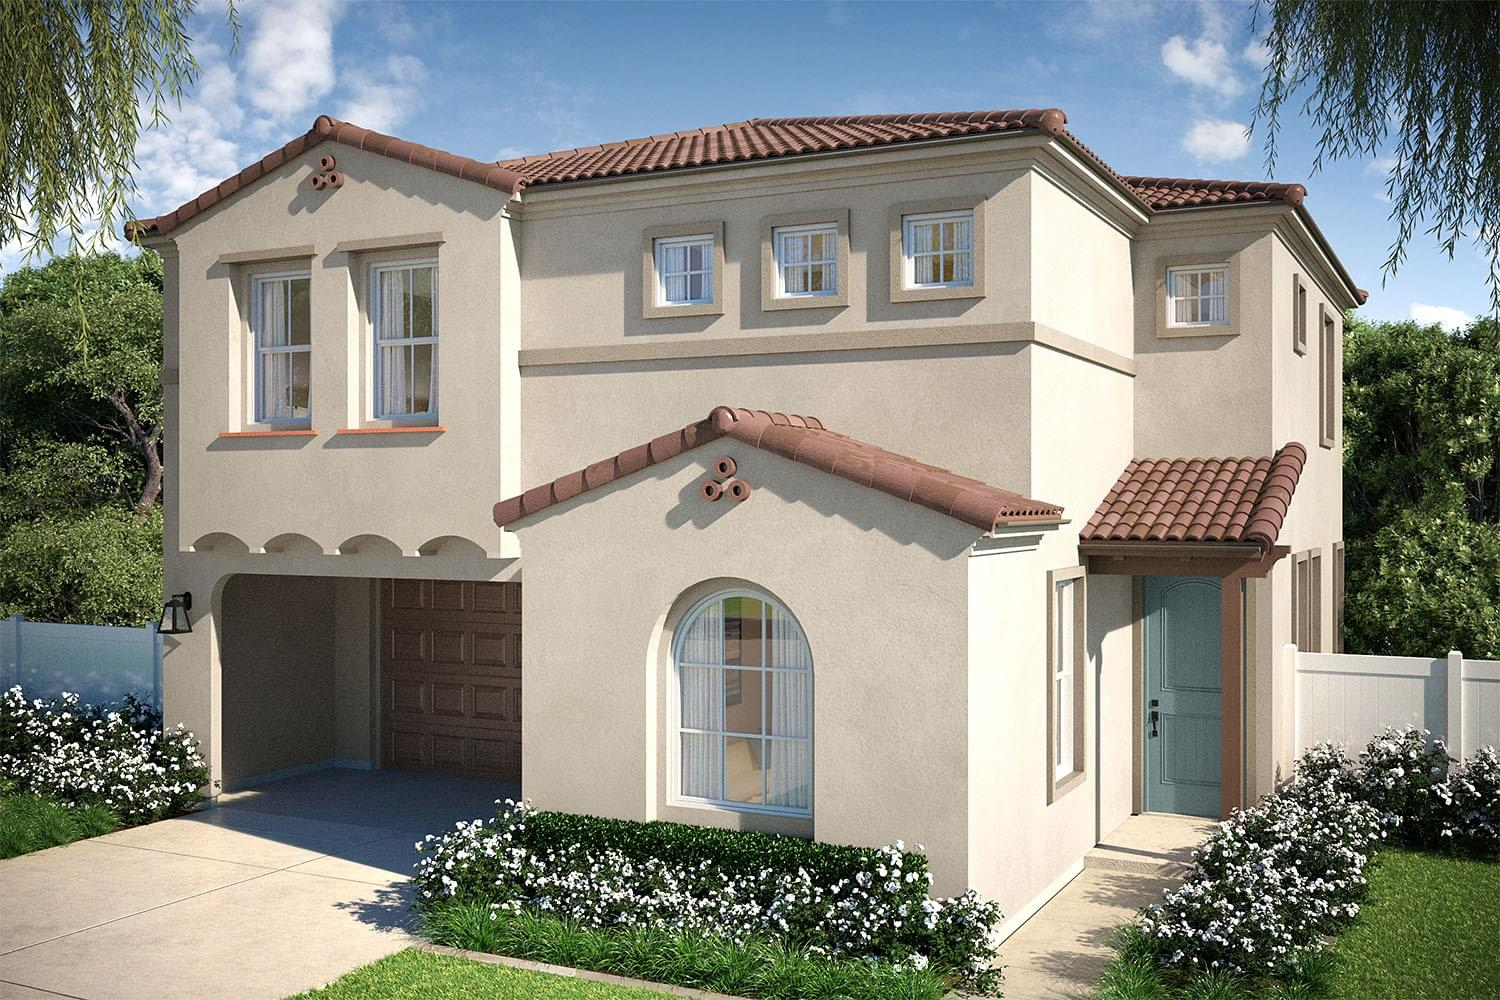 945 Vivid Lane in , CA by DeNova Homes